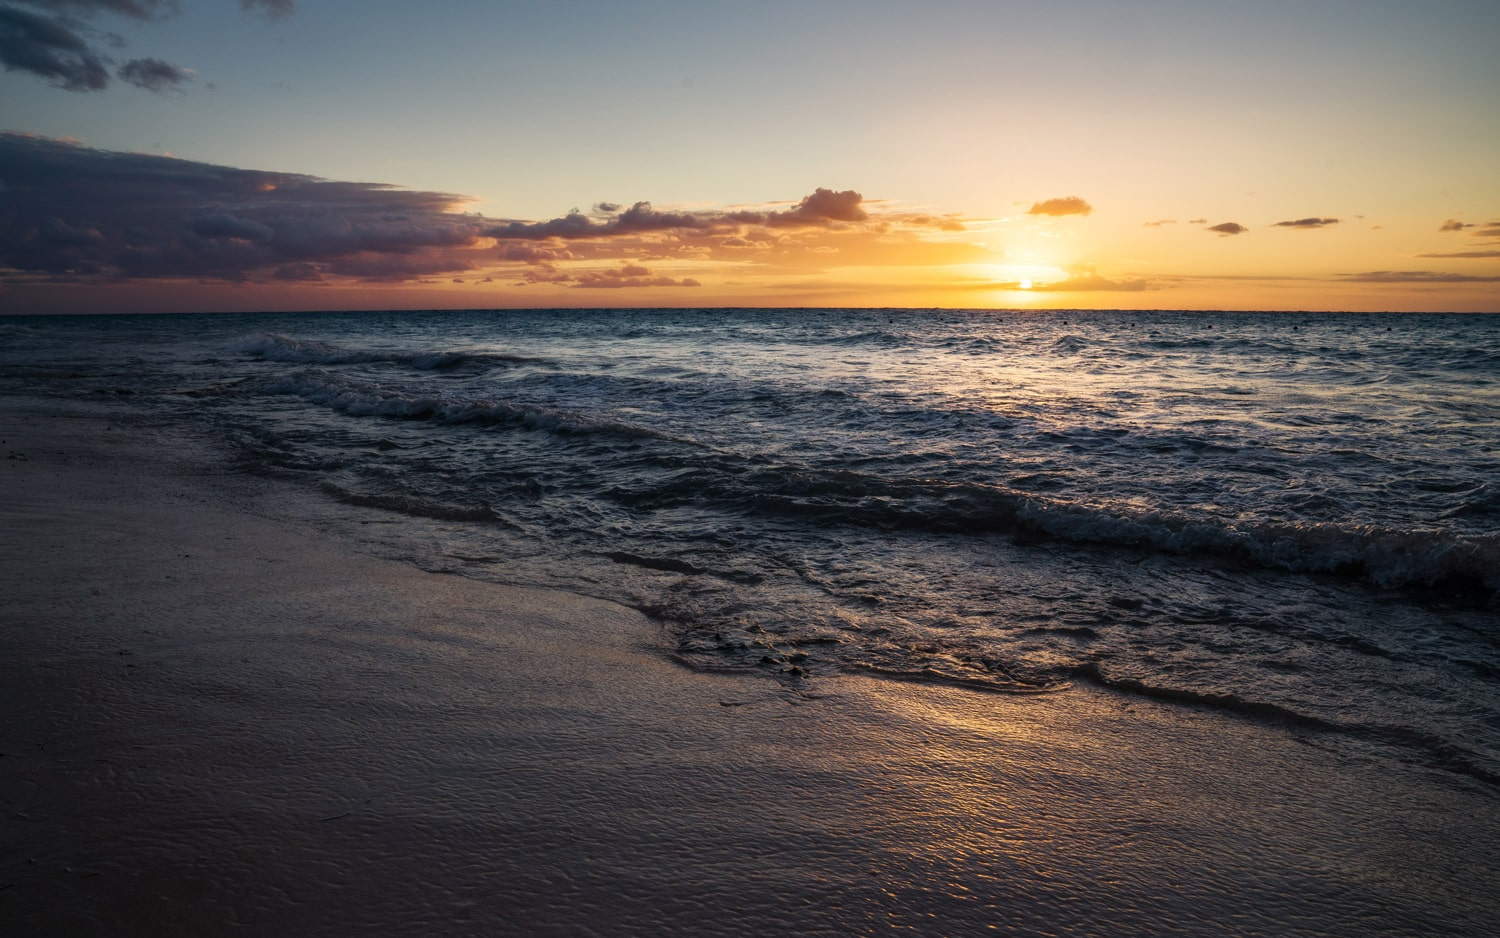 HDR Photography Ocean Sunset